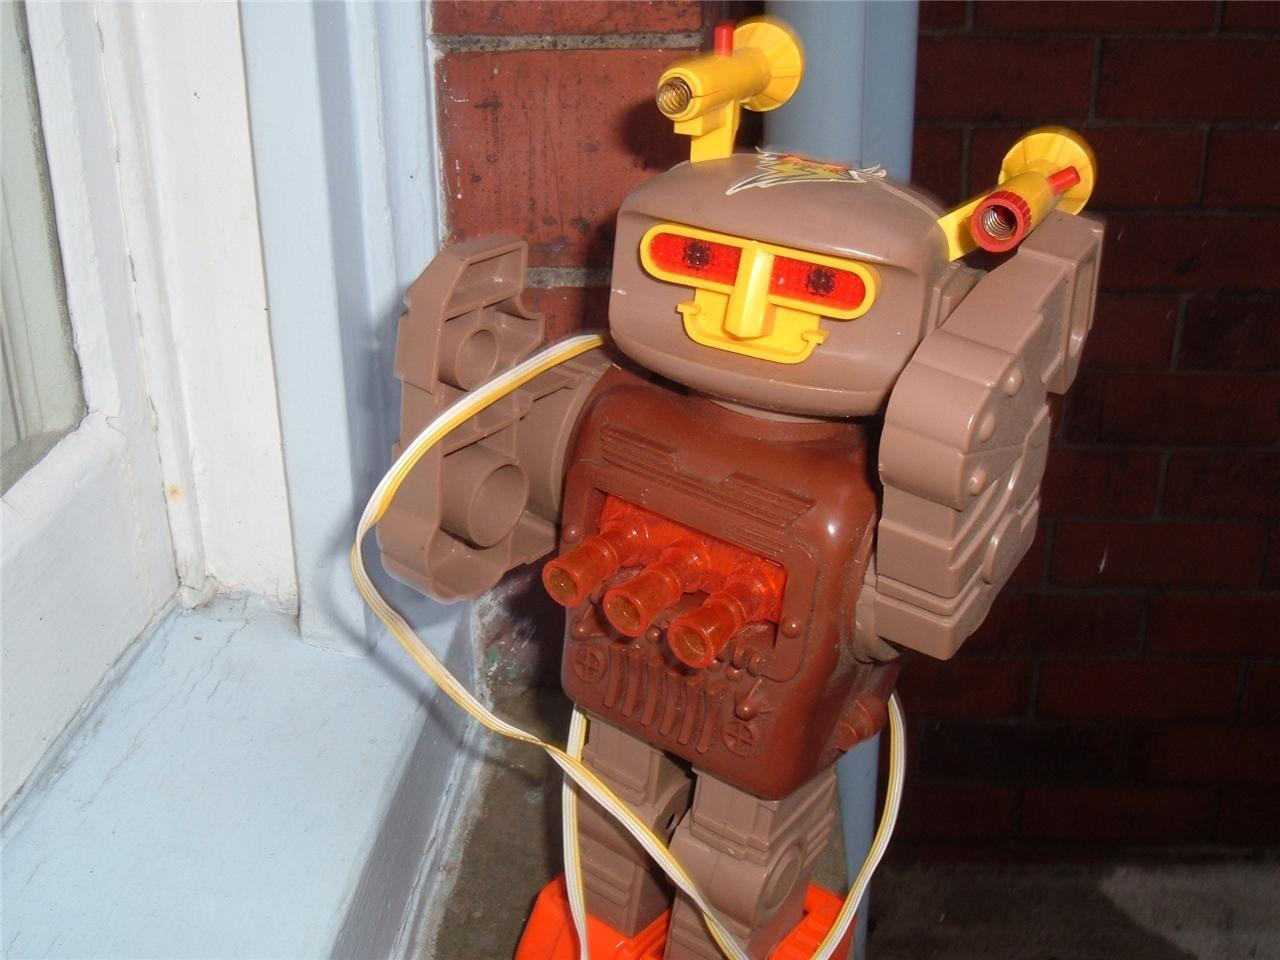 VINTAGE PLAYWELL SPACE COMMANDER ROBOT 1970'S HONG KONG NOT TESTED SPARES